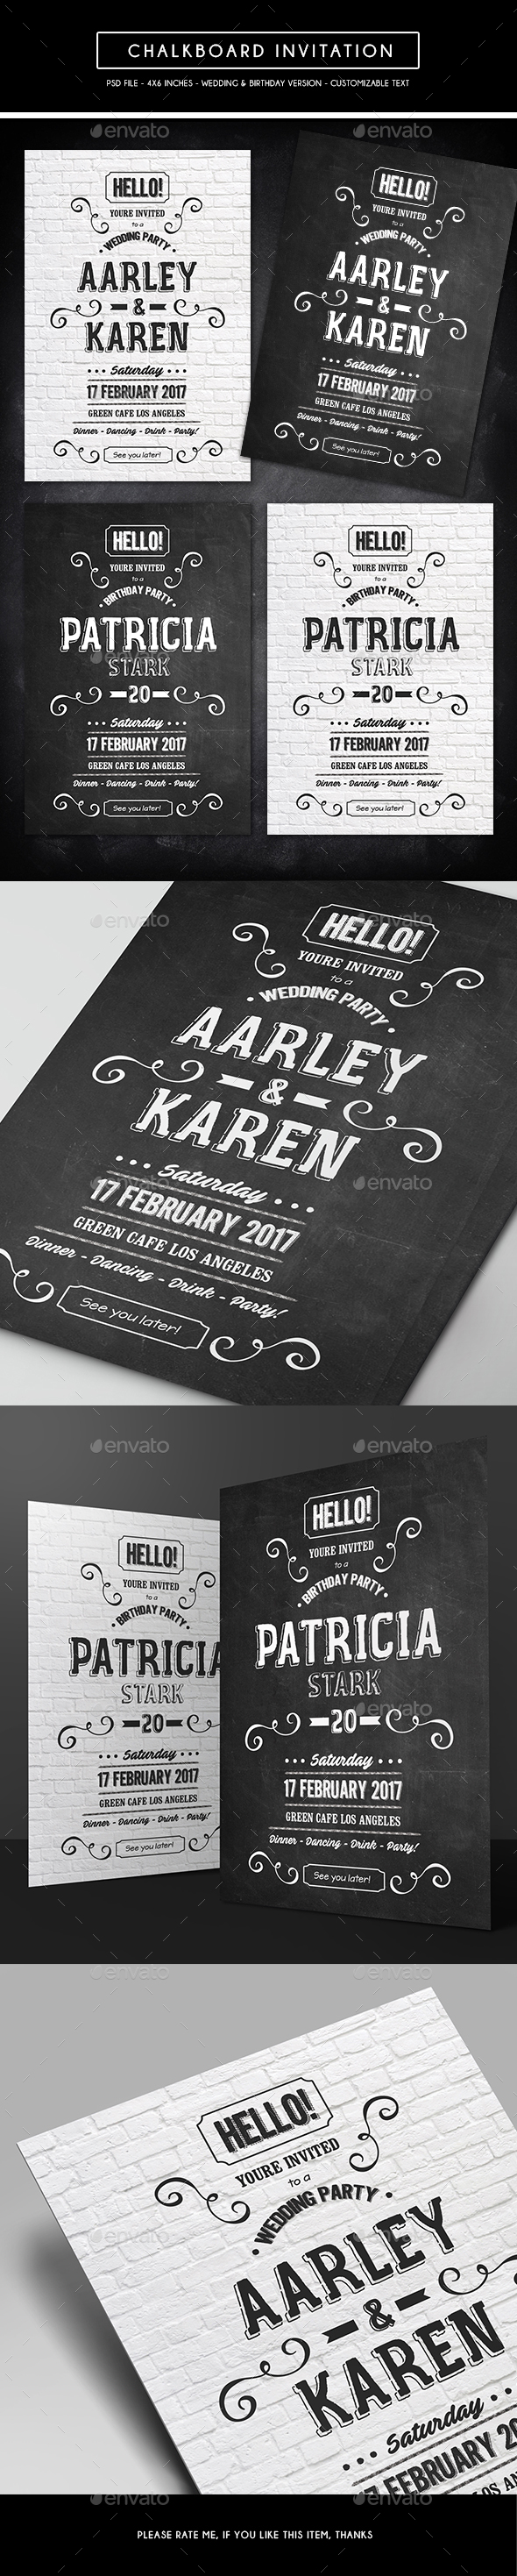 Chalkboard Invitation - Invitations Cards & Invites